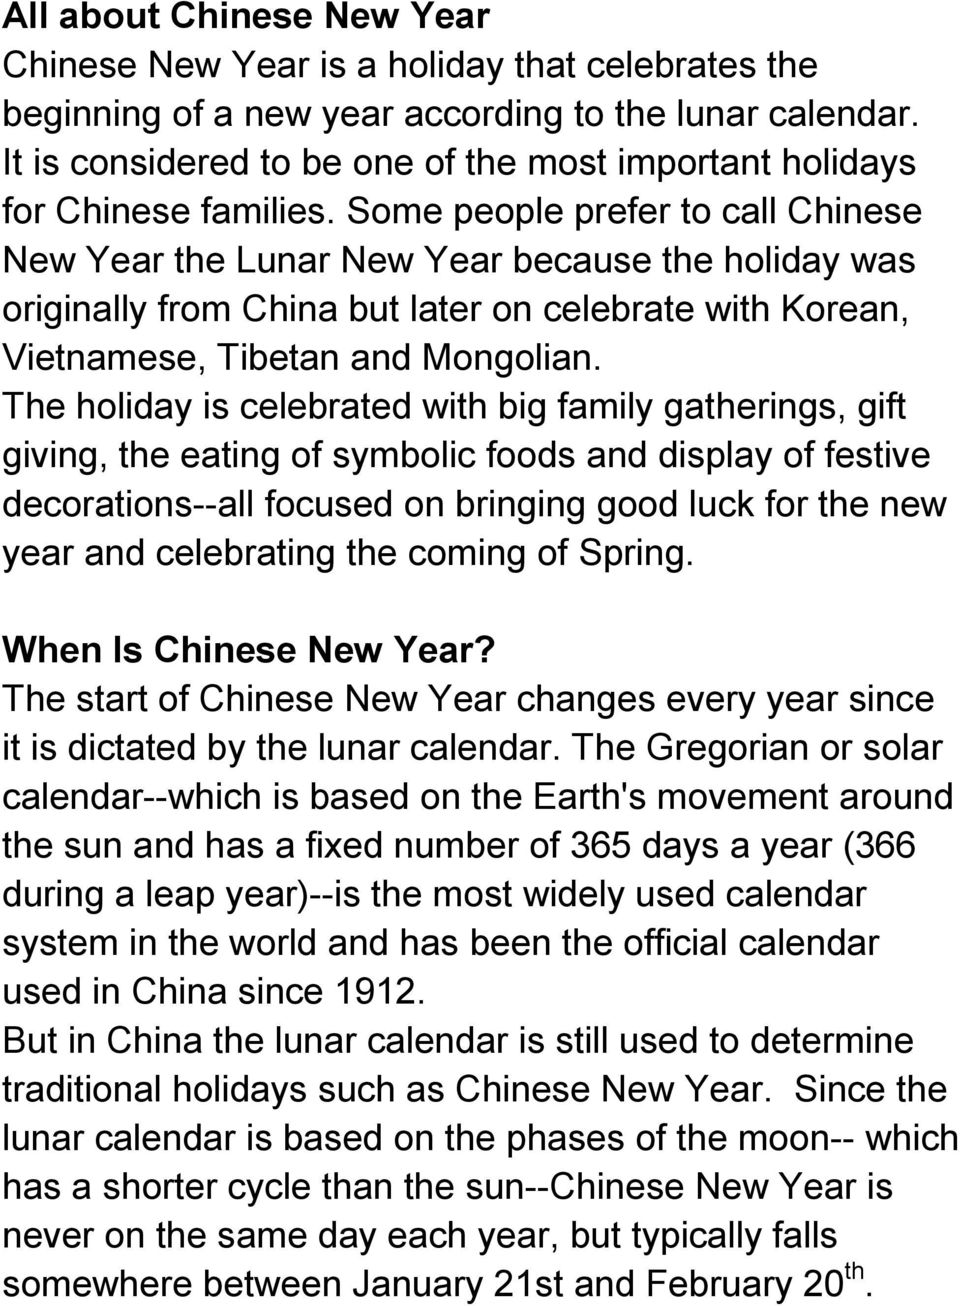 Some people prefer to call Chinese New Year the Lunar New Year because the holiday was originally from China but later on celebrate with Korean, Vietnamese, Tibetan and Mongolian.